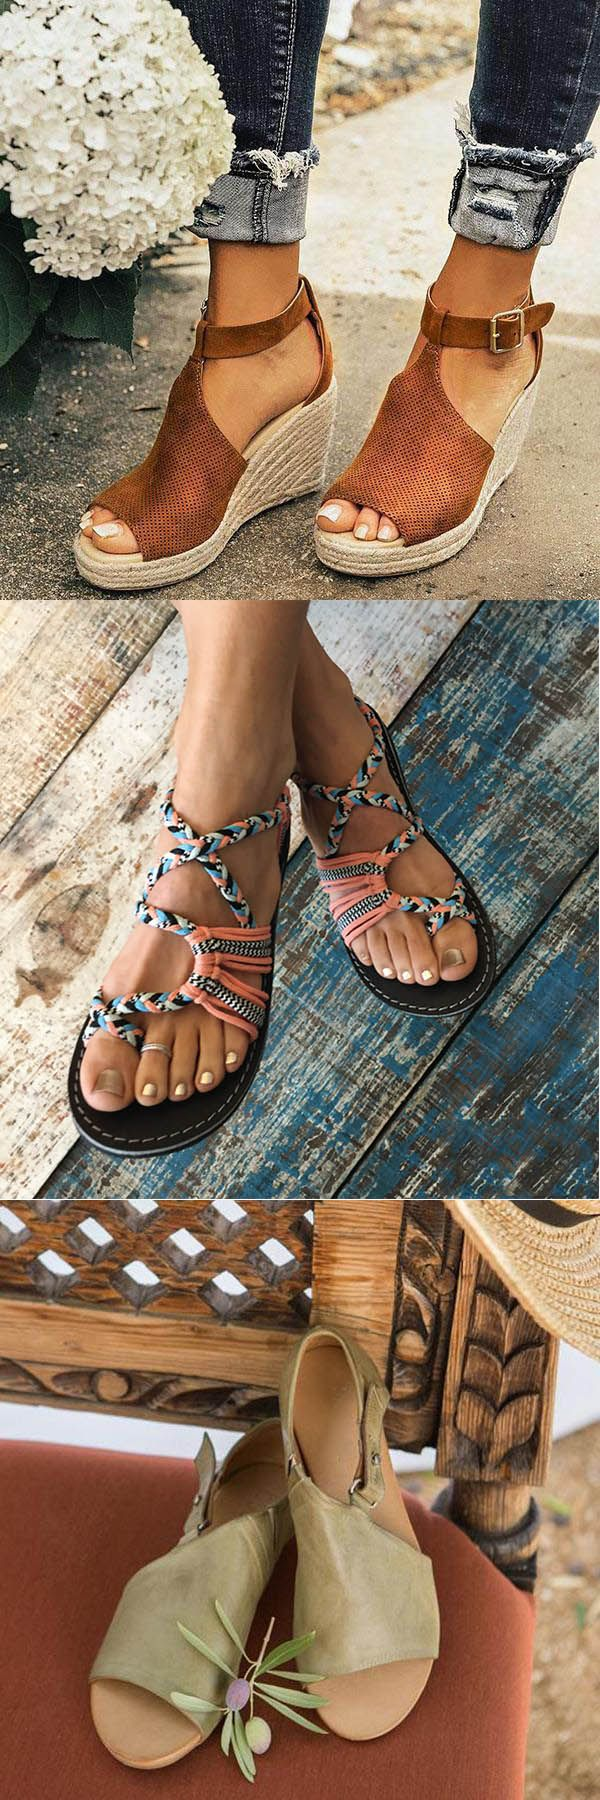 spring summer sandals,Women Chic Espadrille Wedges Sandals with Adjustable Buckle -   20 fall crafts tree